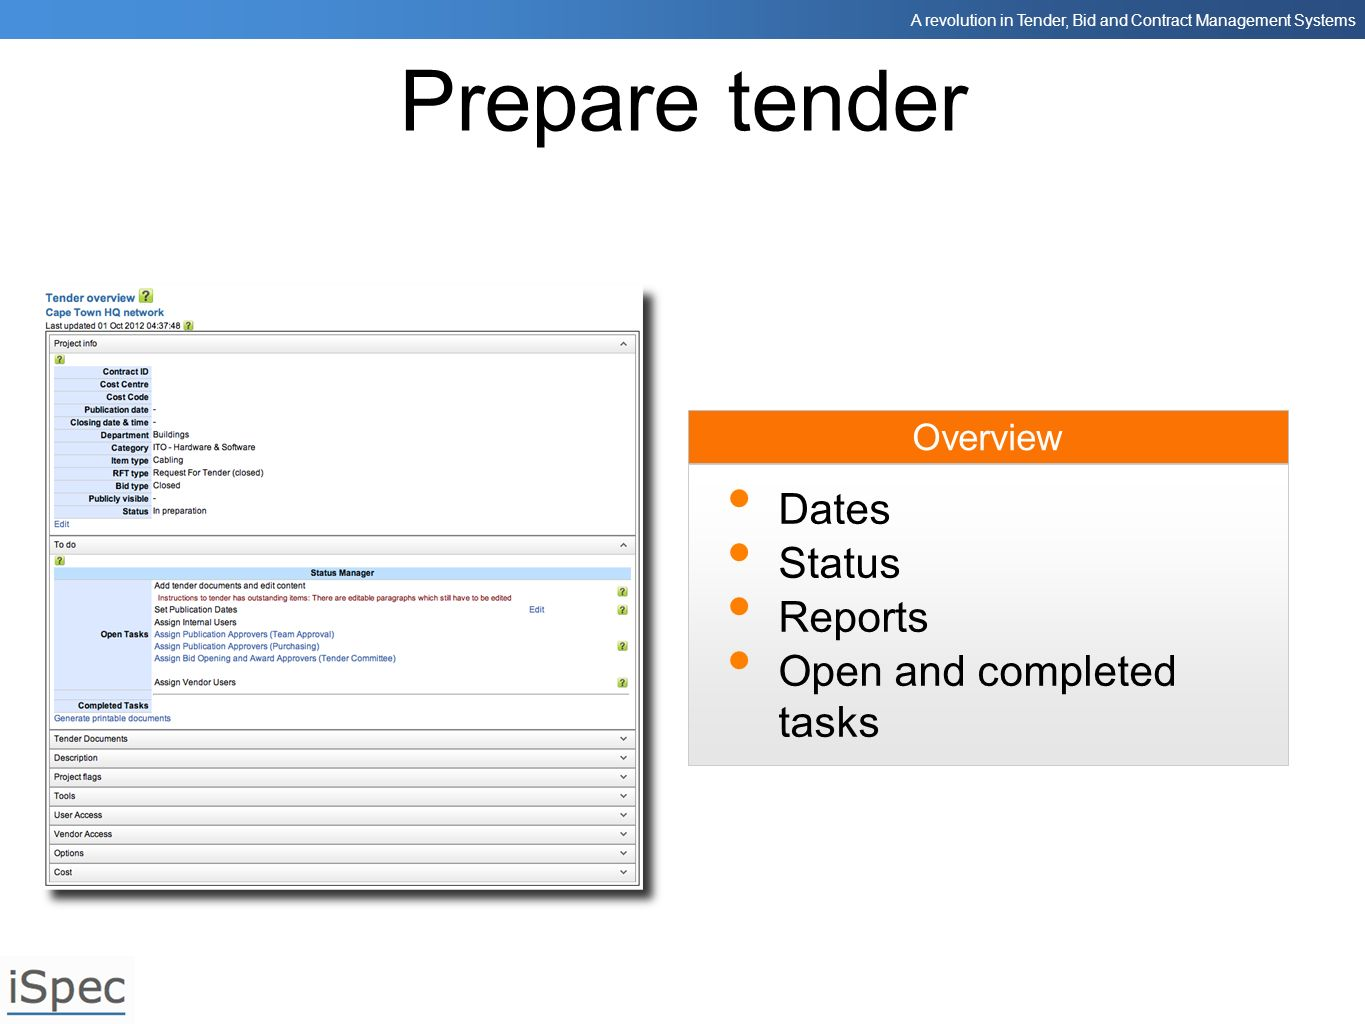 Prepare tender Dates Status Reports Open and completed tasks Overview